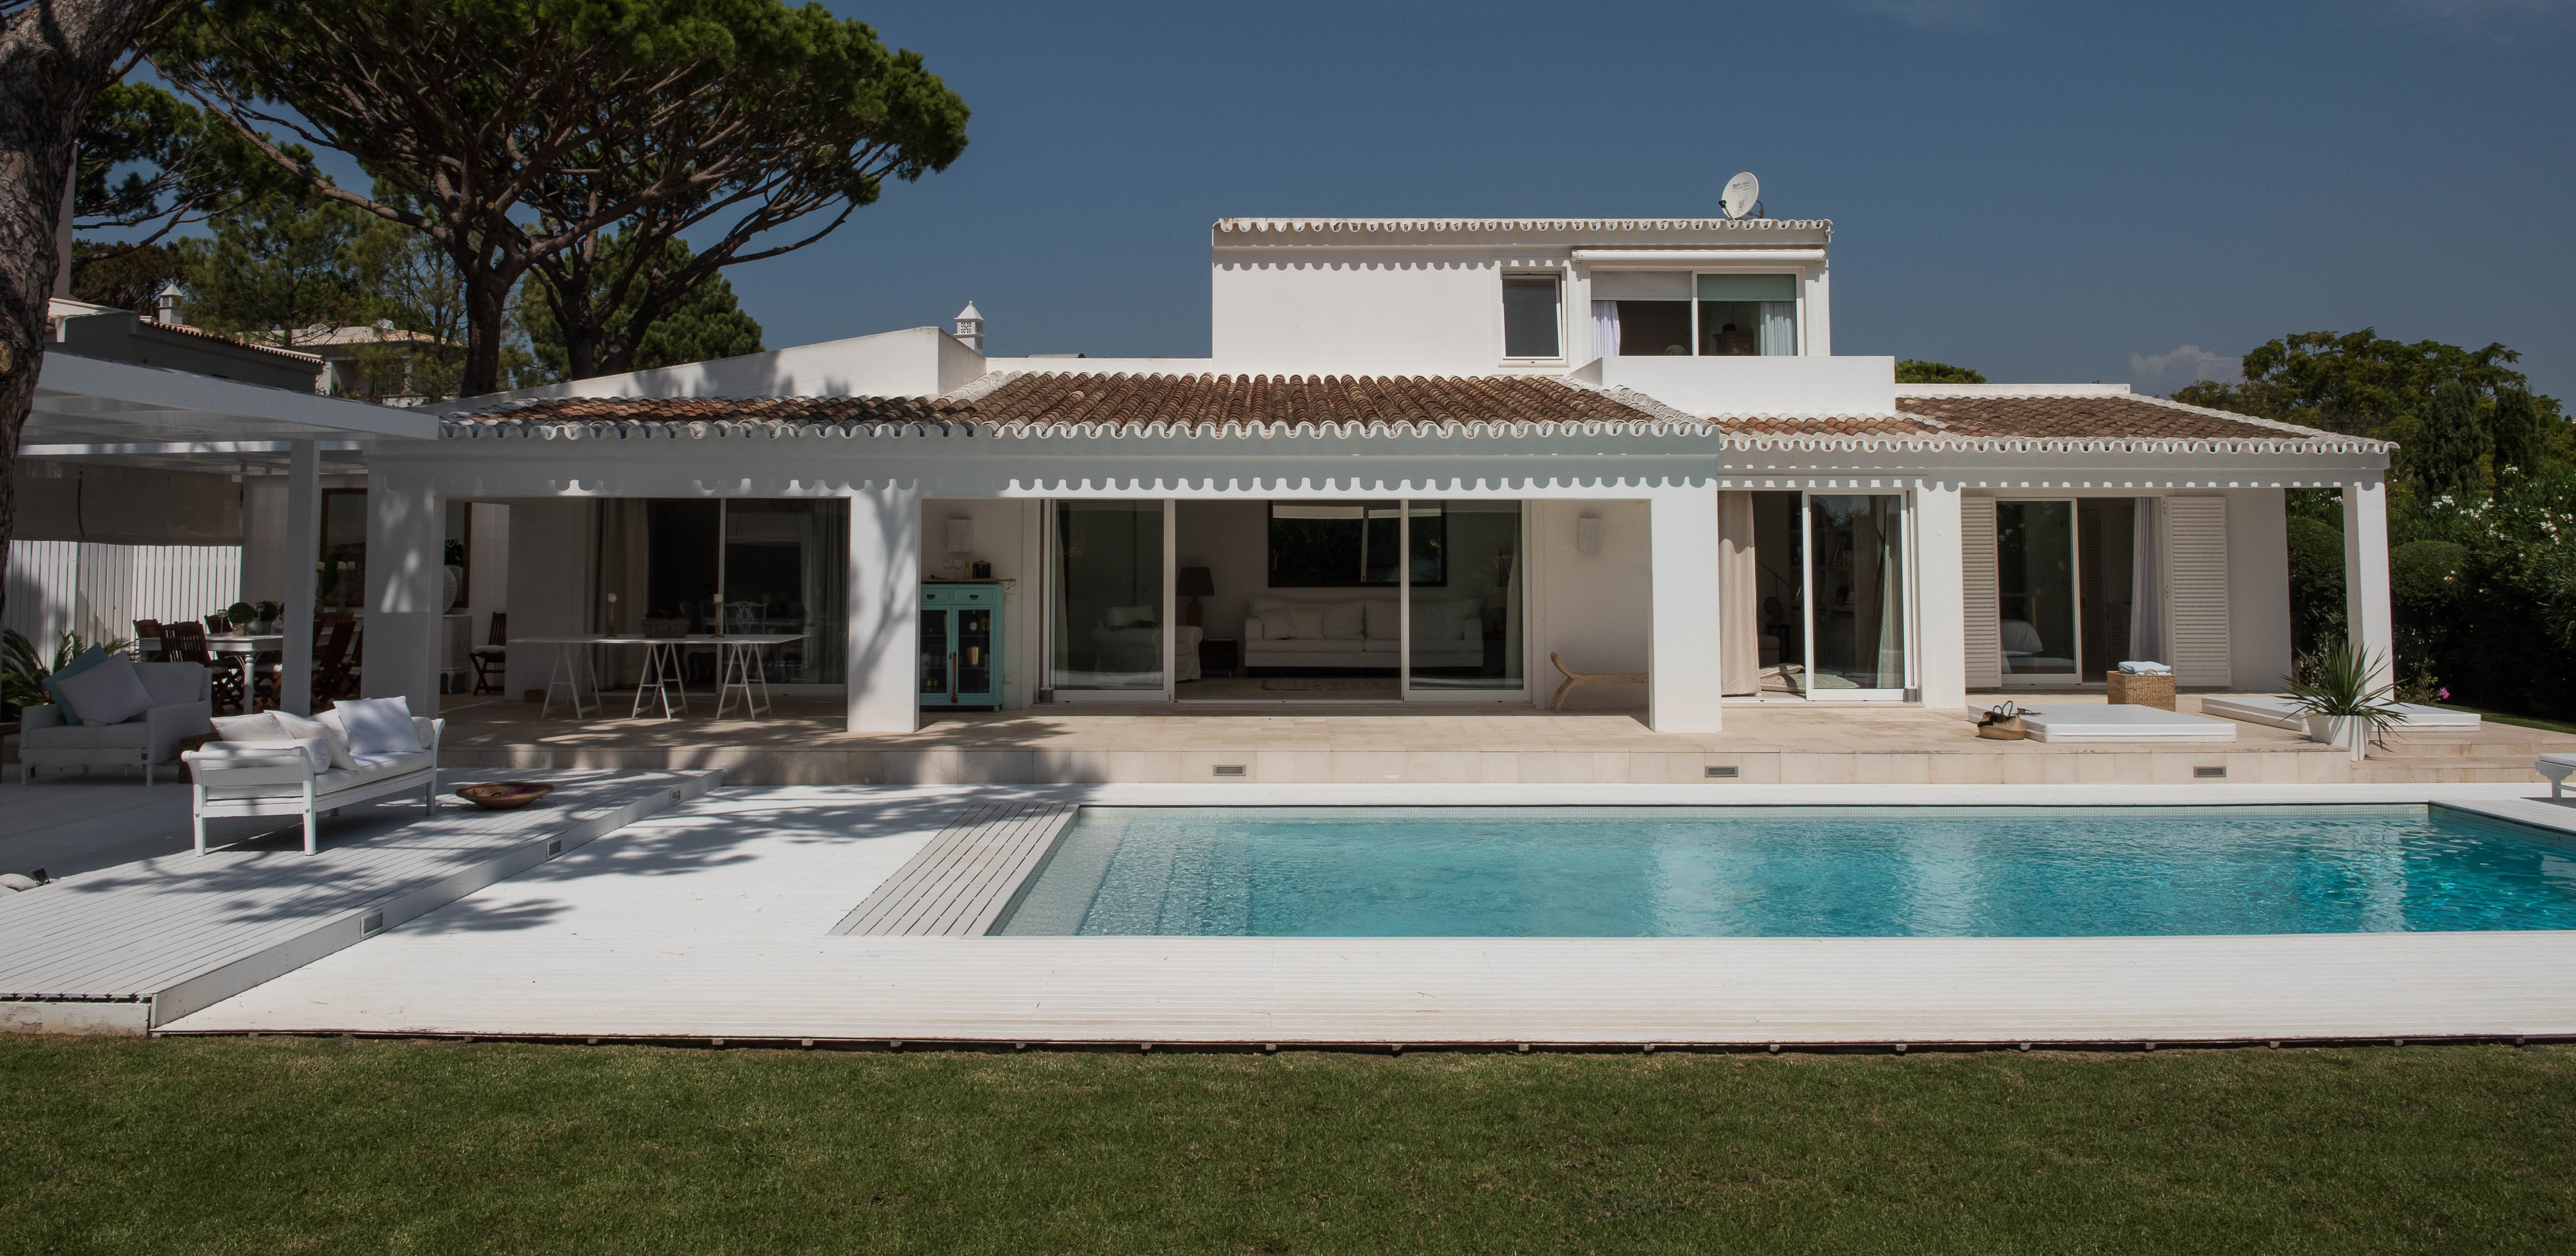 luxury-4-bedroom-villa-algarve